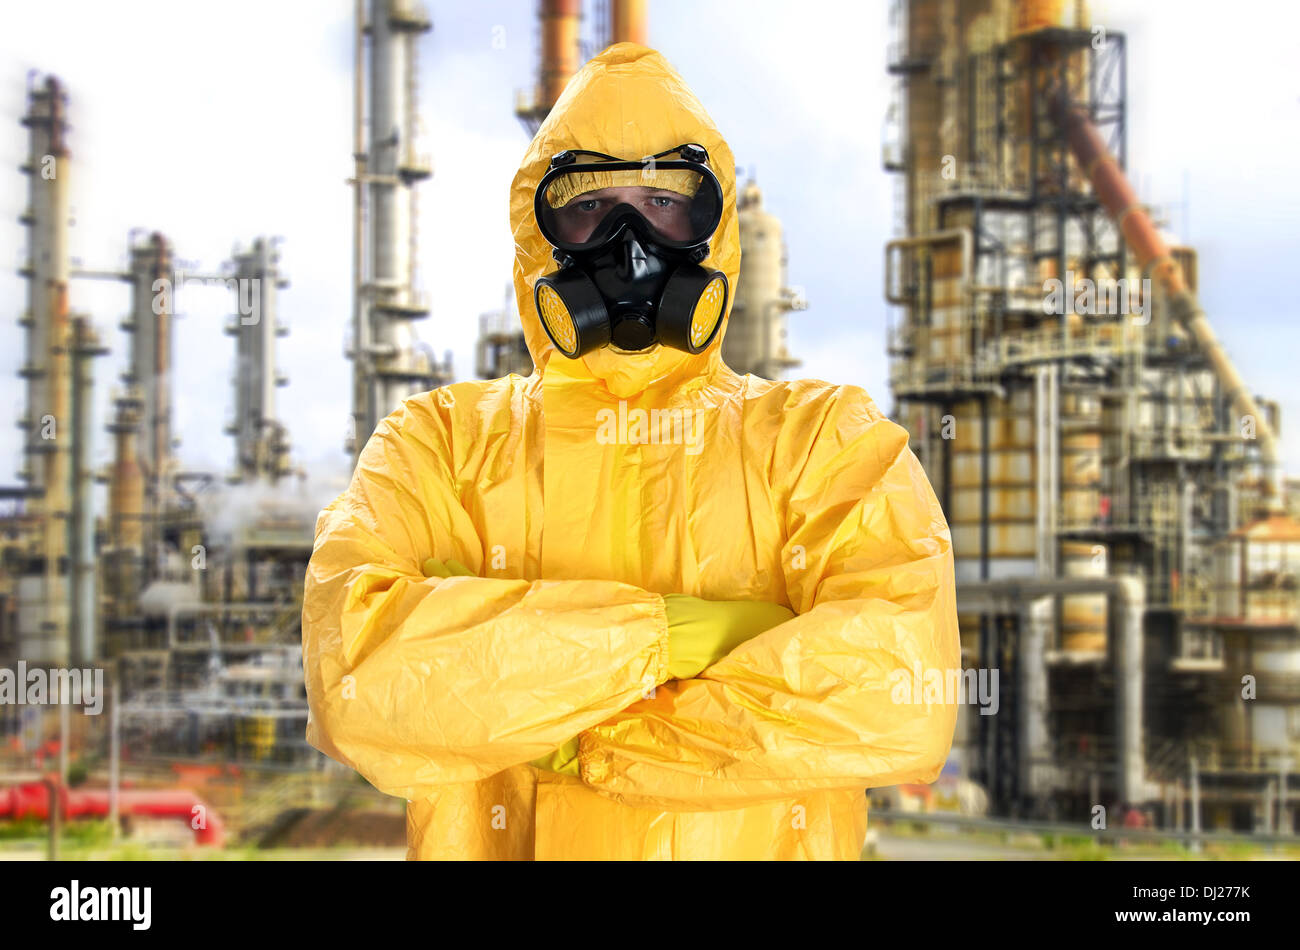 Man in chemical protective suit over factory - Stock Image